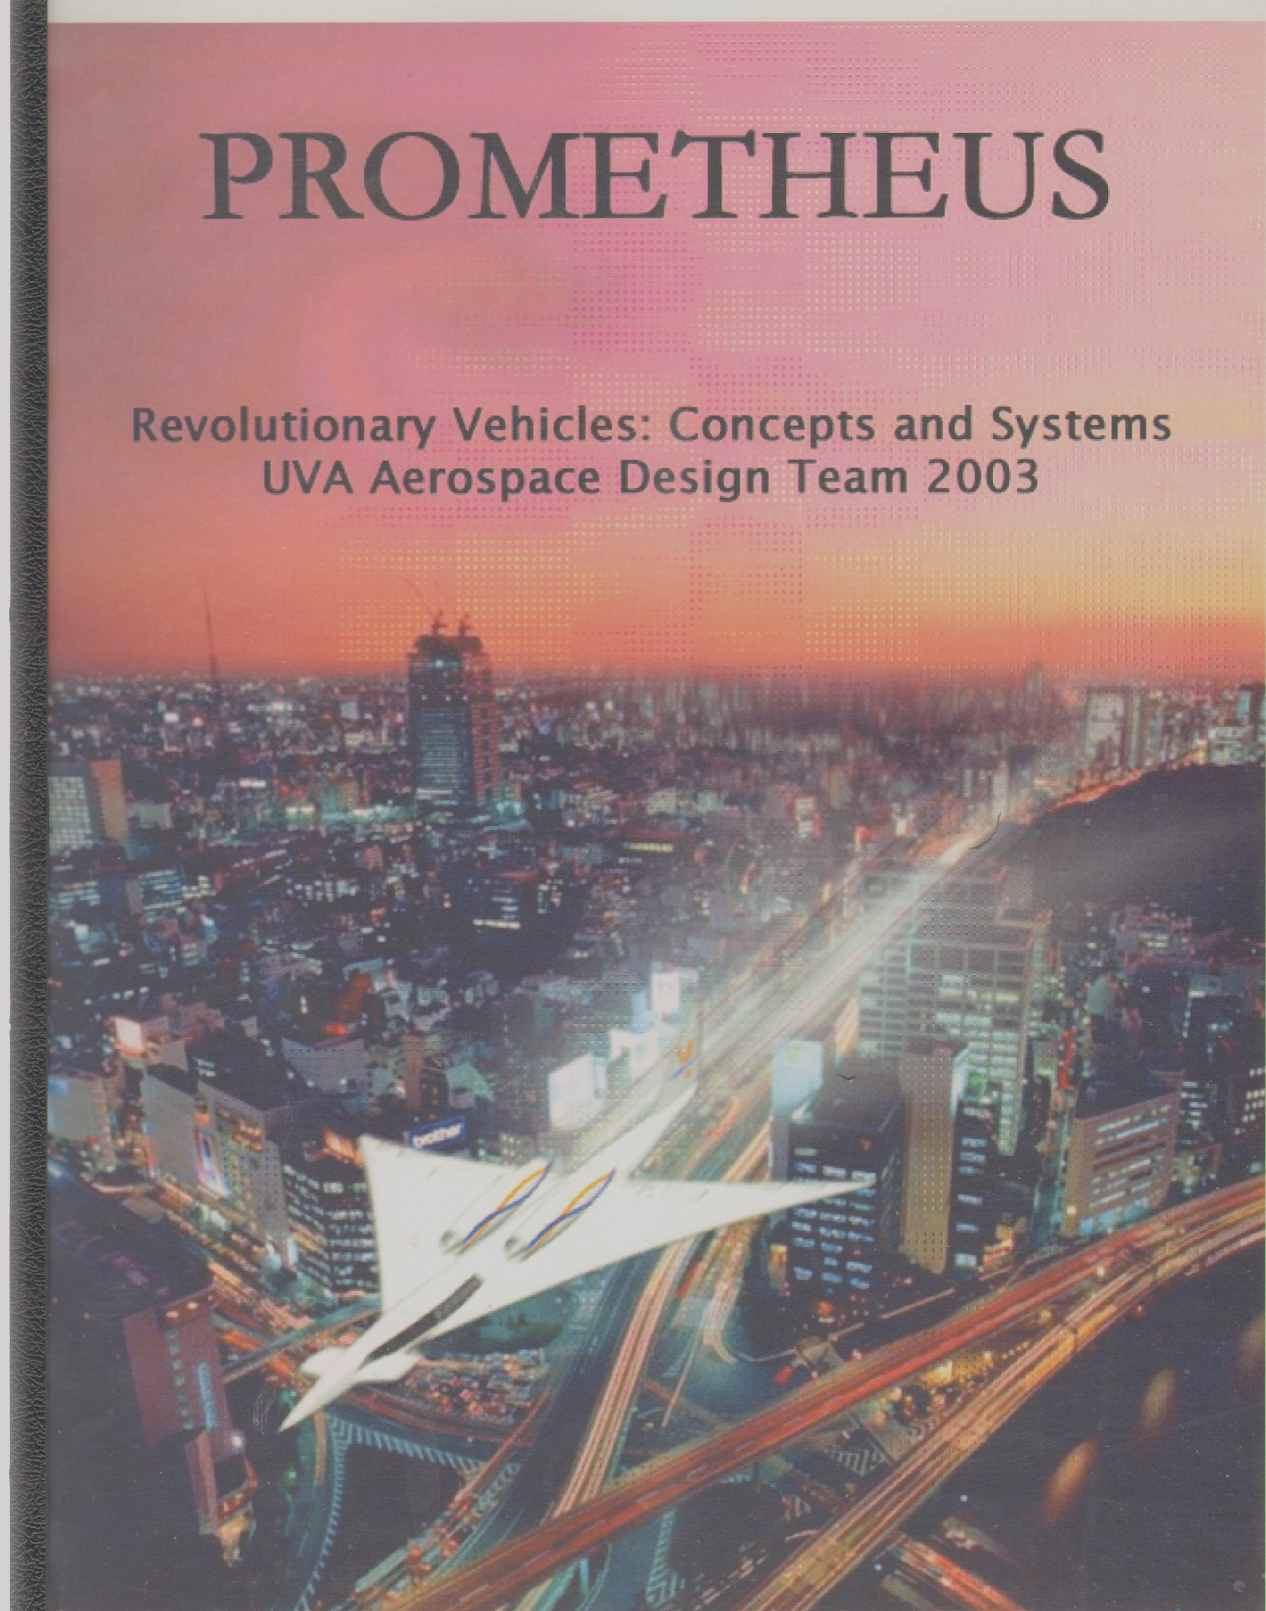 Image for PROMETHEUS Revolutionary Vehicles: Concepts and Systems UVA Aerospace Design Team 2003